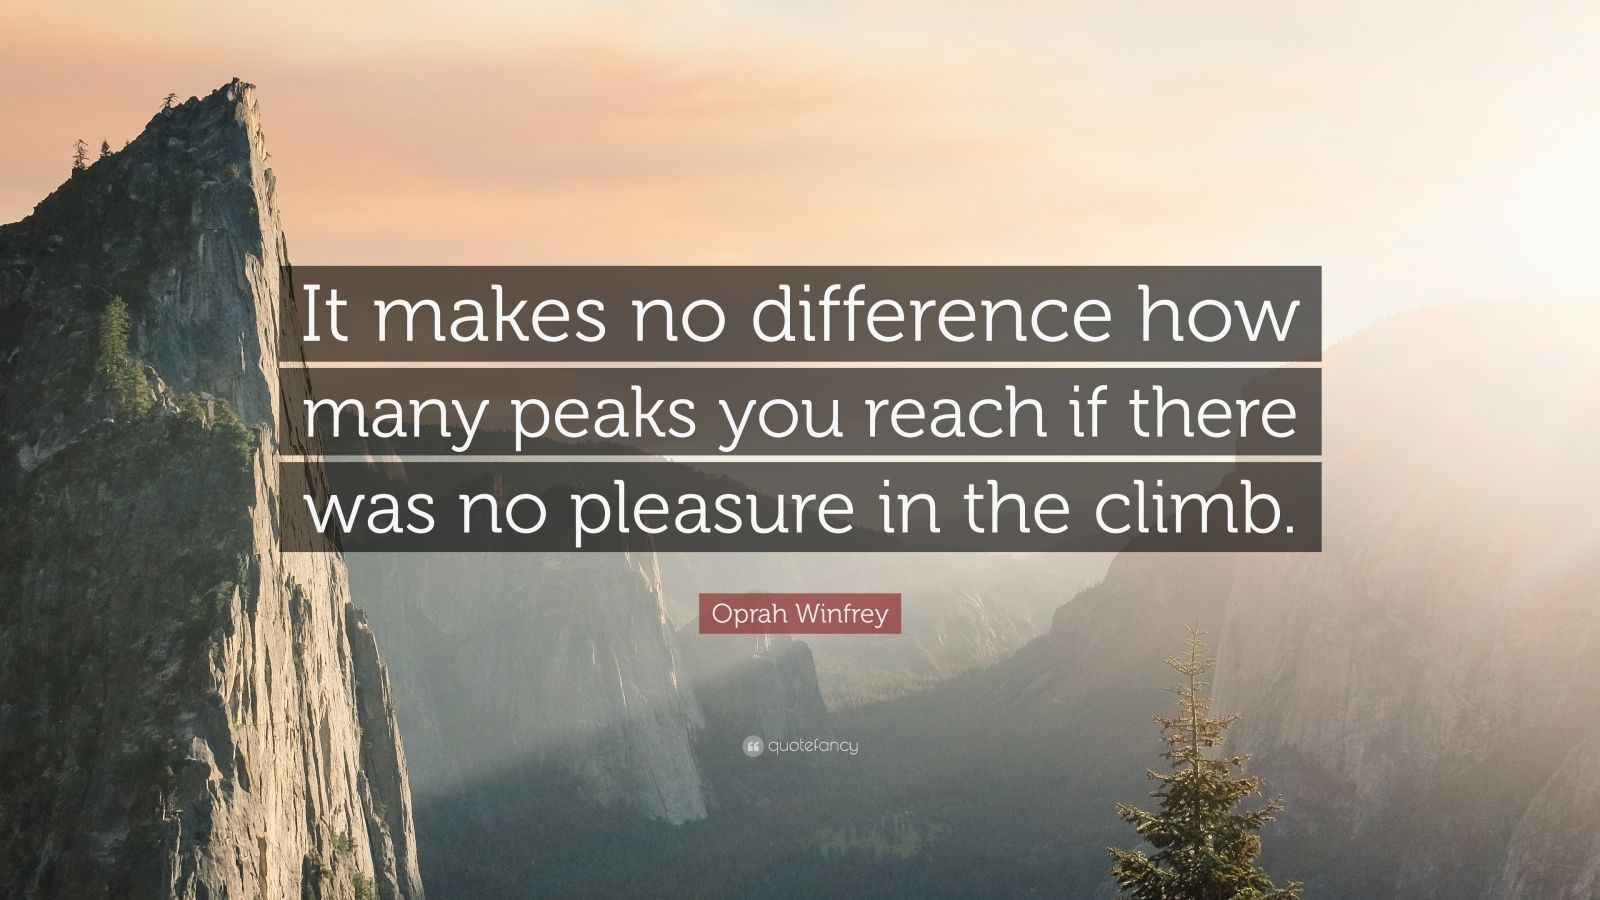 """Oprah Winfrey Quote: """"It makes no difference how many peaks you reach if there was no pleasure in the climb."""""""